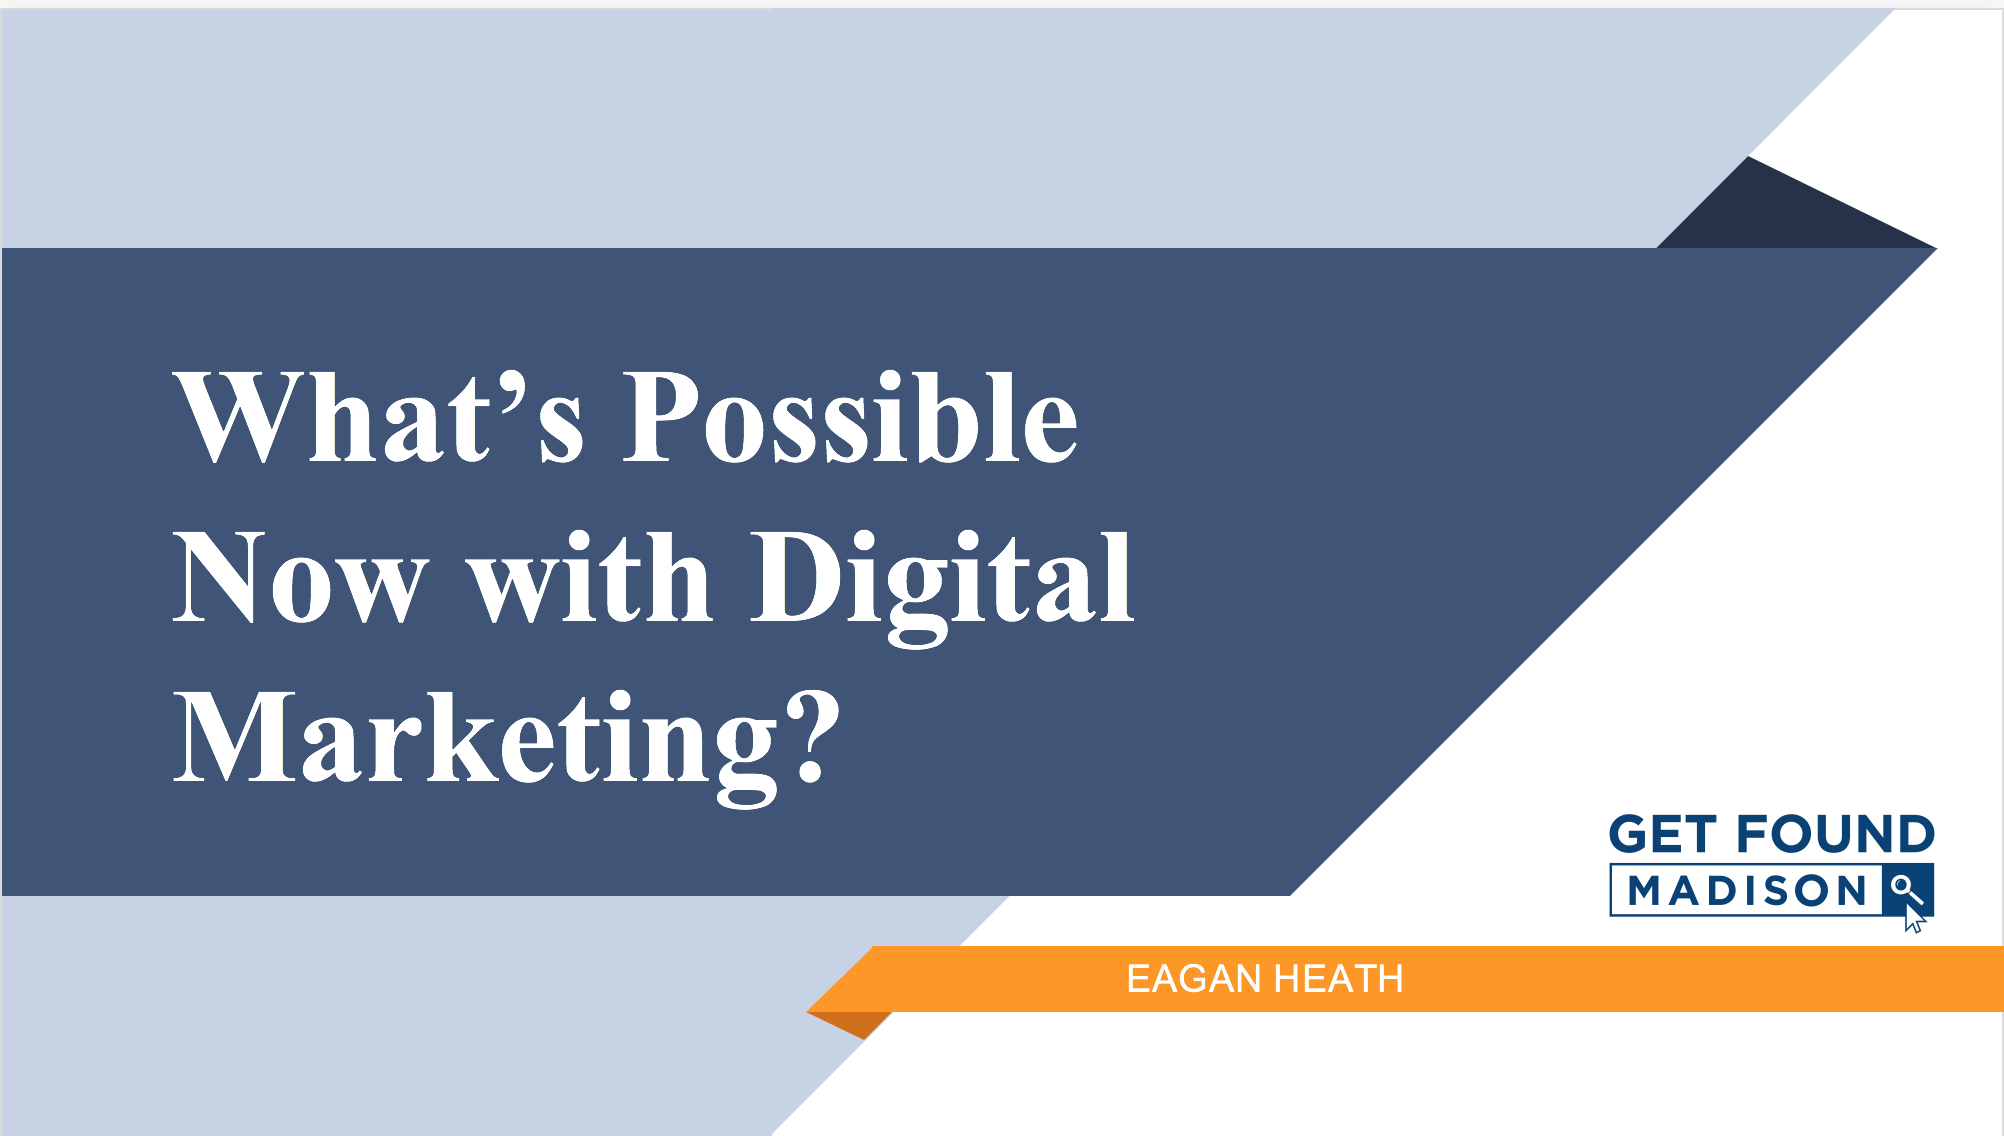 What's possible now with digital marketing?